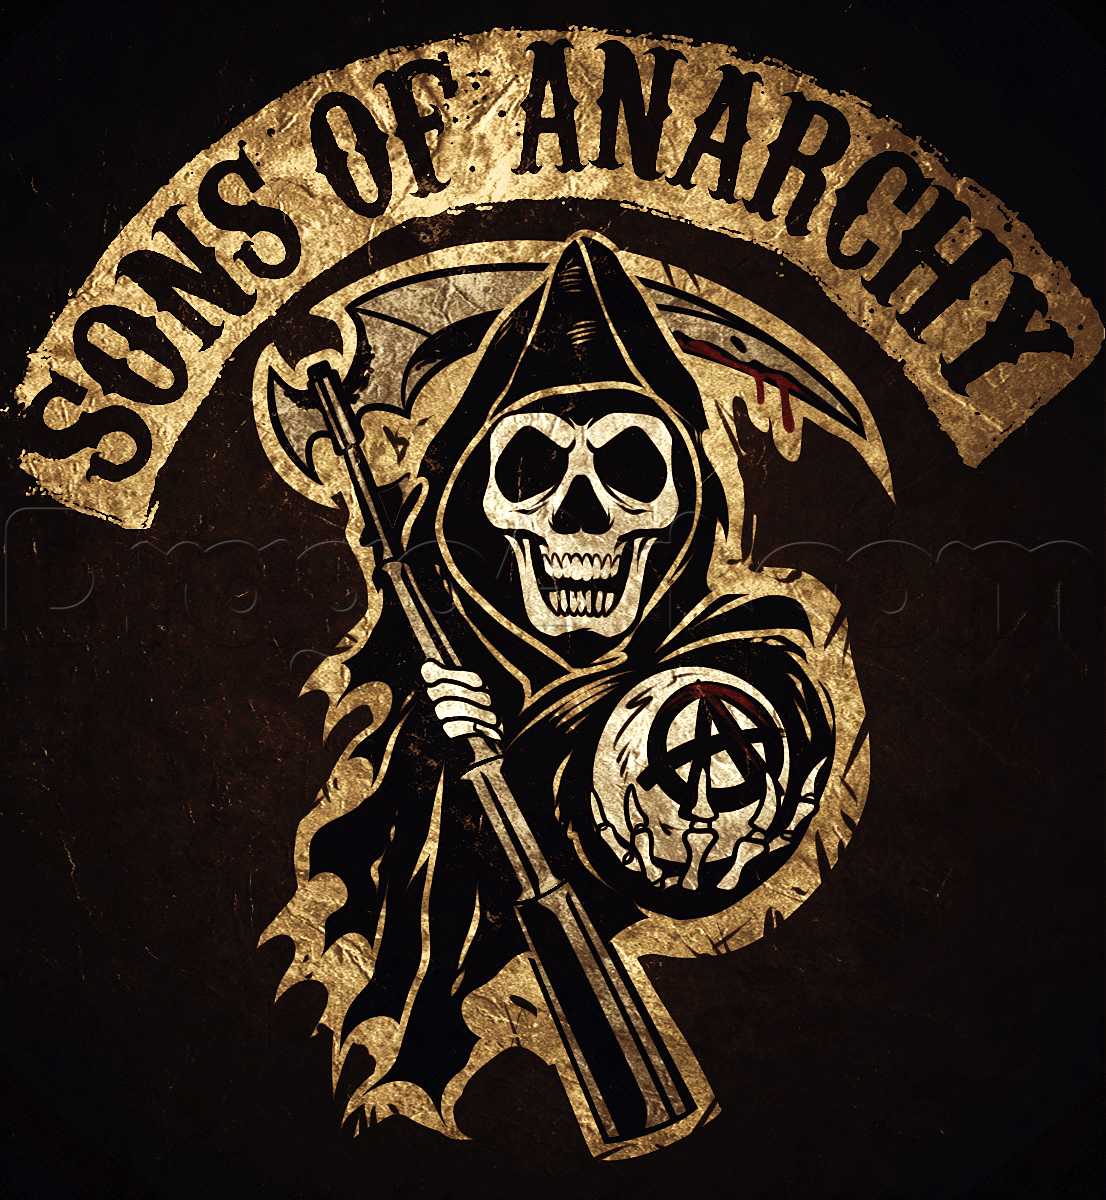 How To Draw The Sons Of Anarchy Step By Step Symbols Pop Culture Free Online Drawing Tutoria Sons Of Anarchy Sons Of Anarchy Tattoos Sons Of Anarchy Reaper